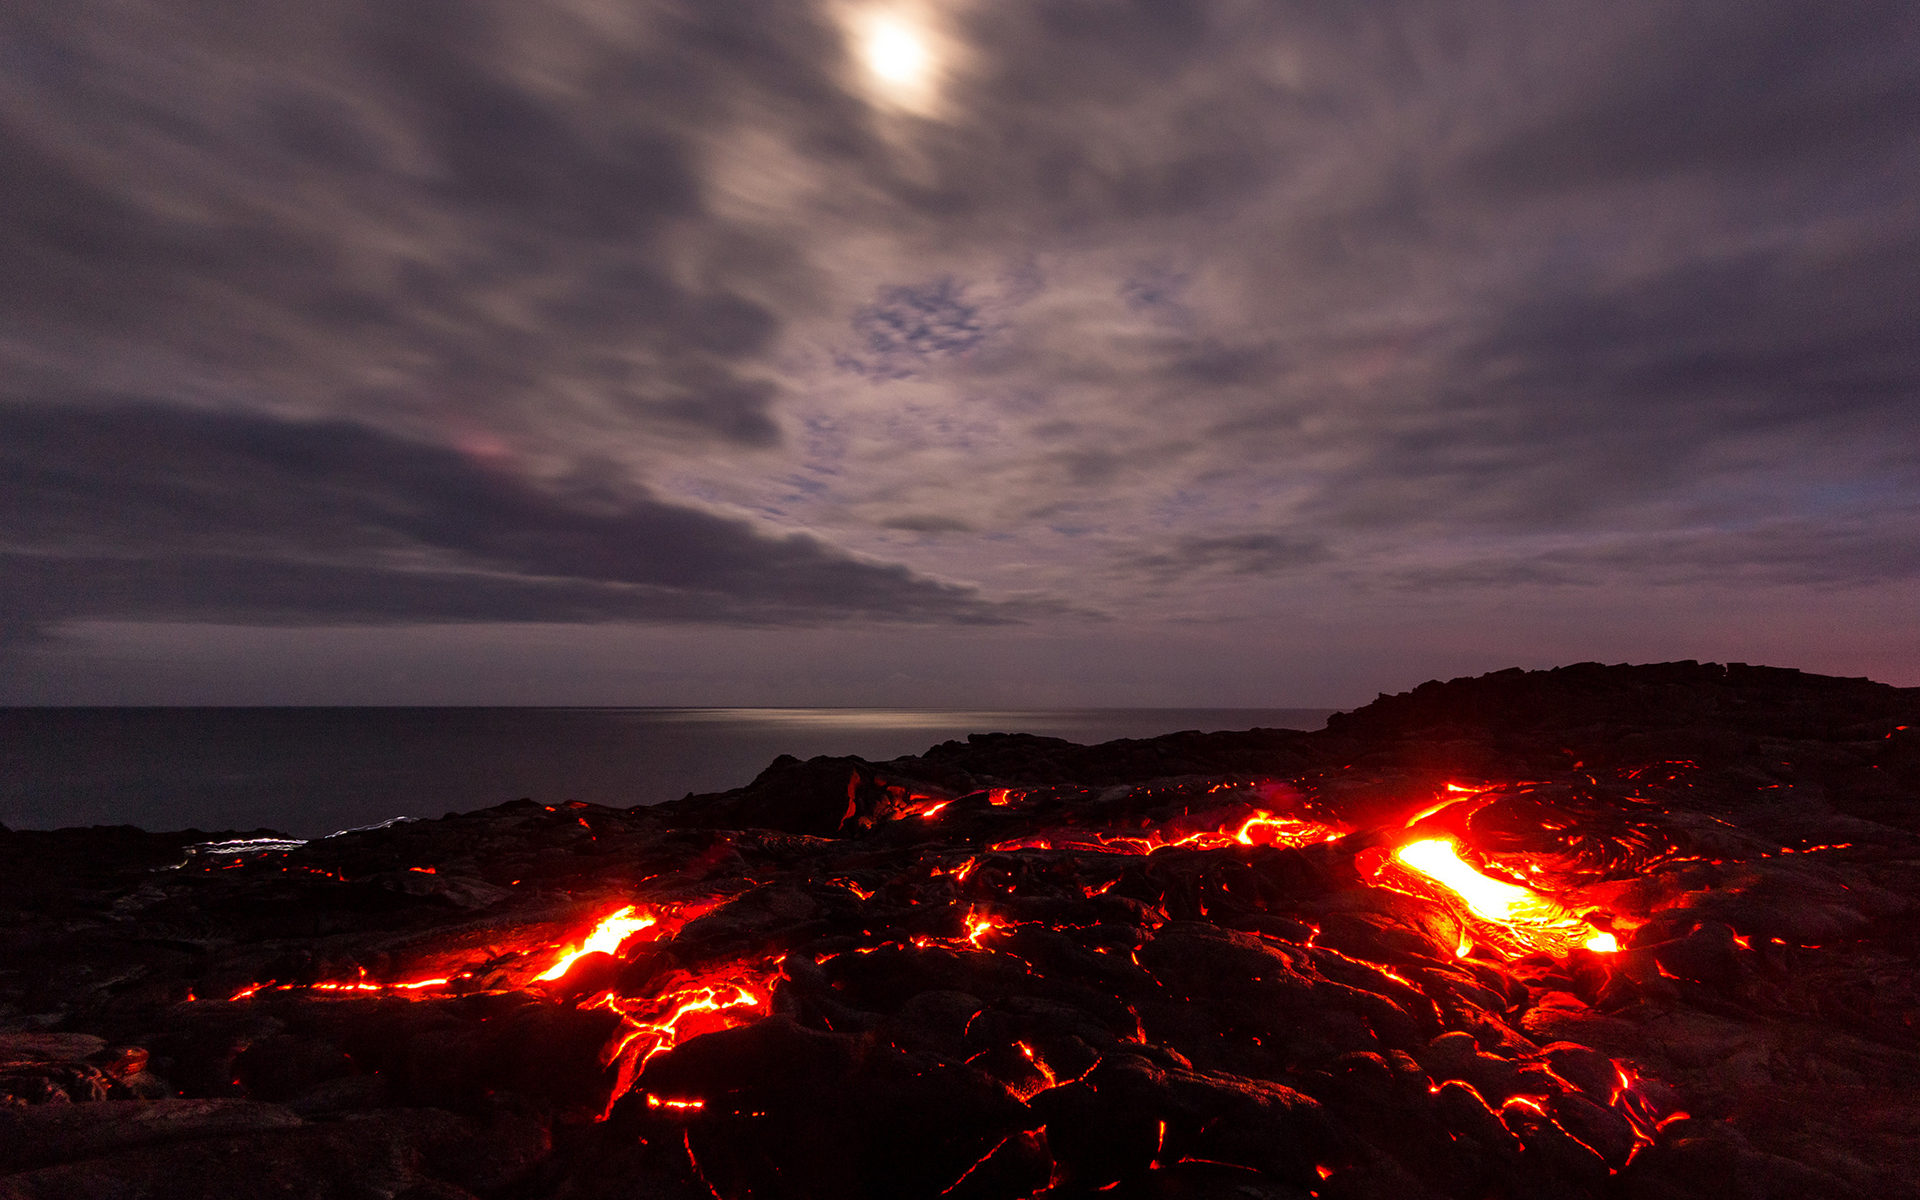 Solidified Lava Fire Texture Of Eruption Volcano Stock Photo ...